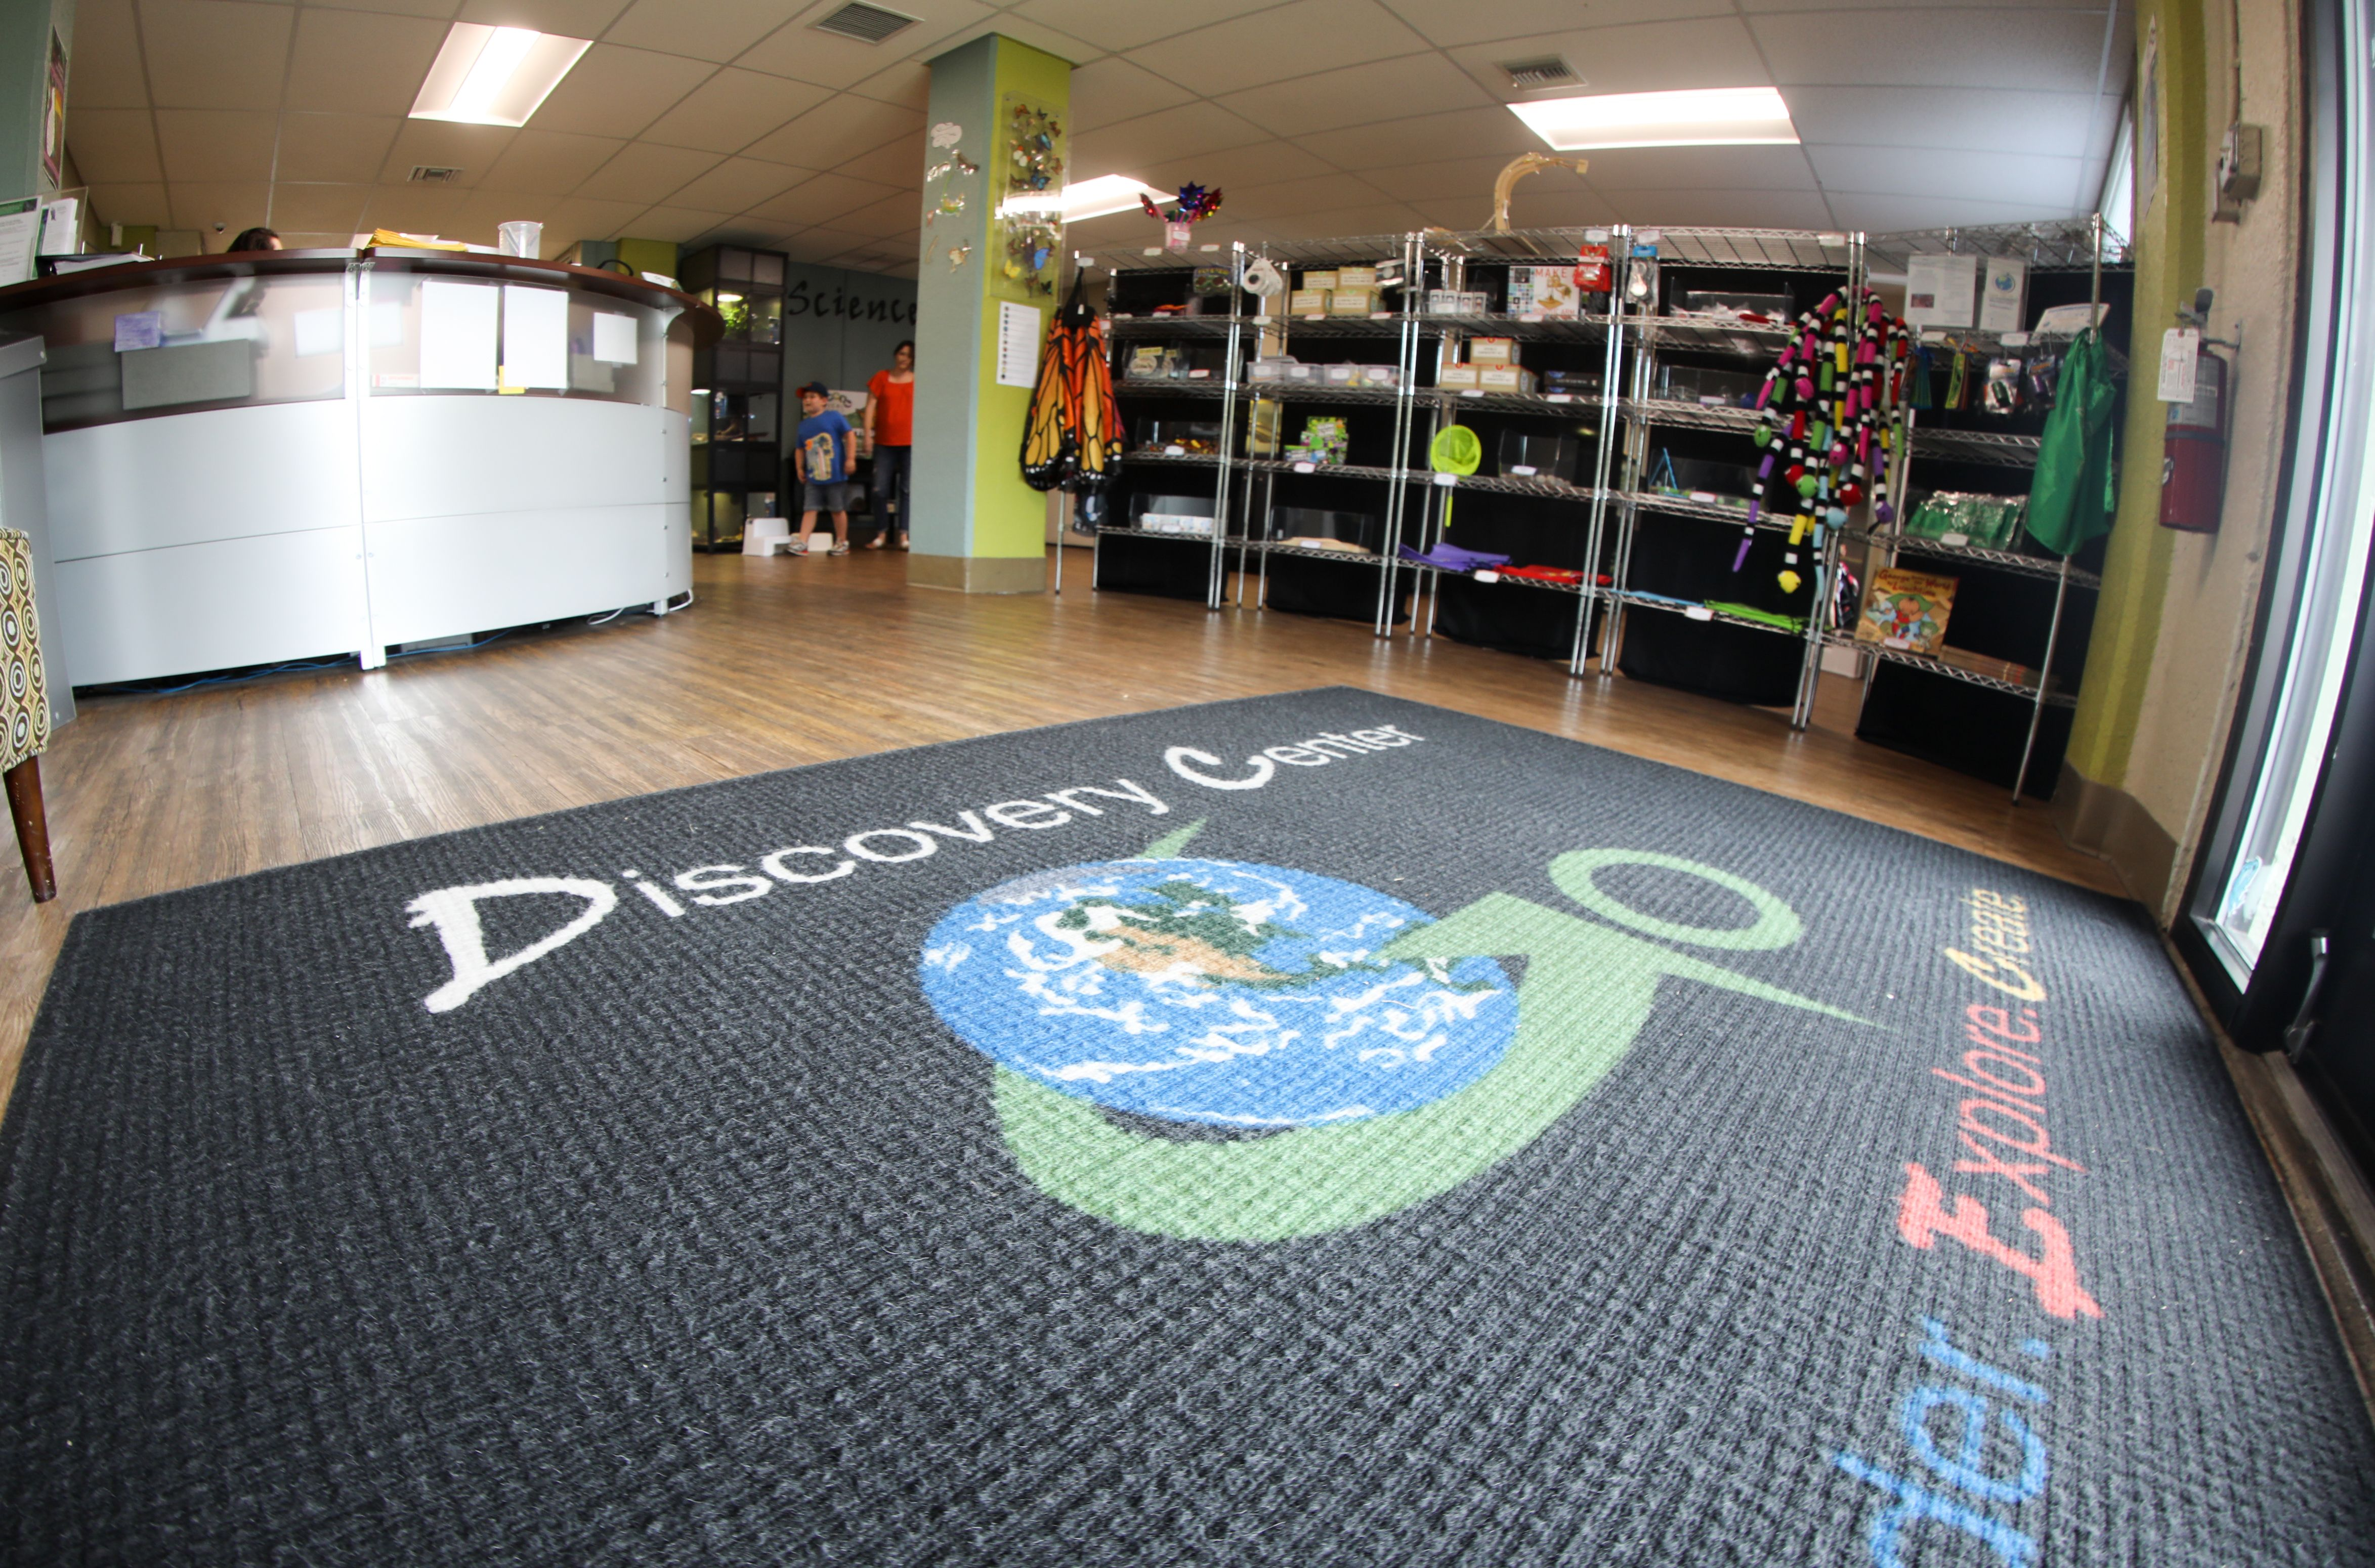 Discovery Center In Ocala Fl Reciprocal Privleges Florida Travel Ocala Kids Rugs